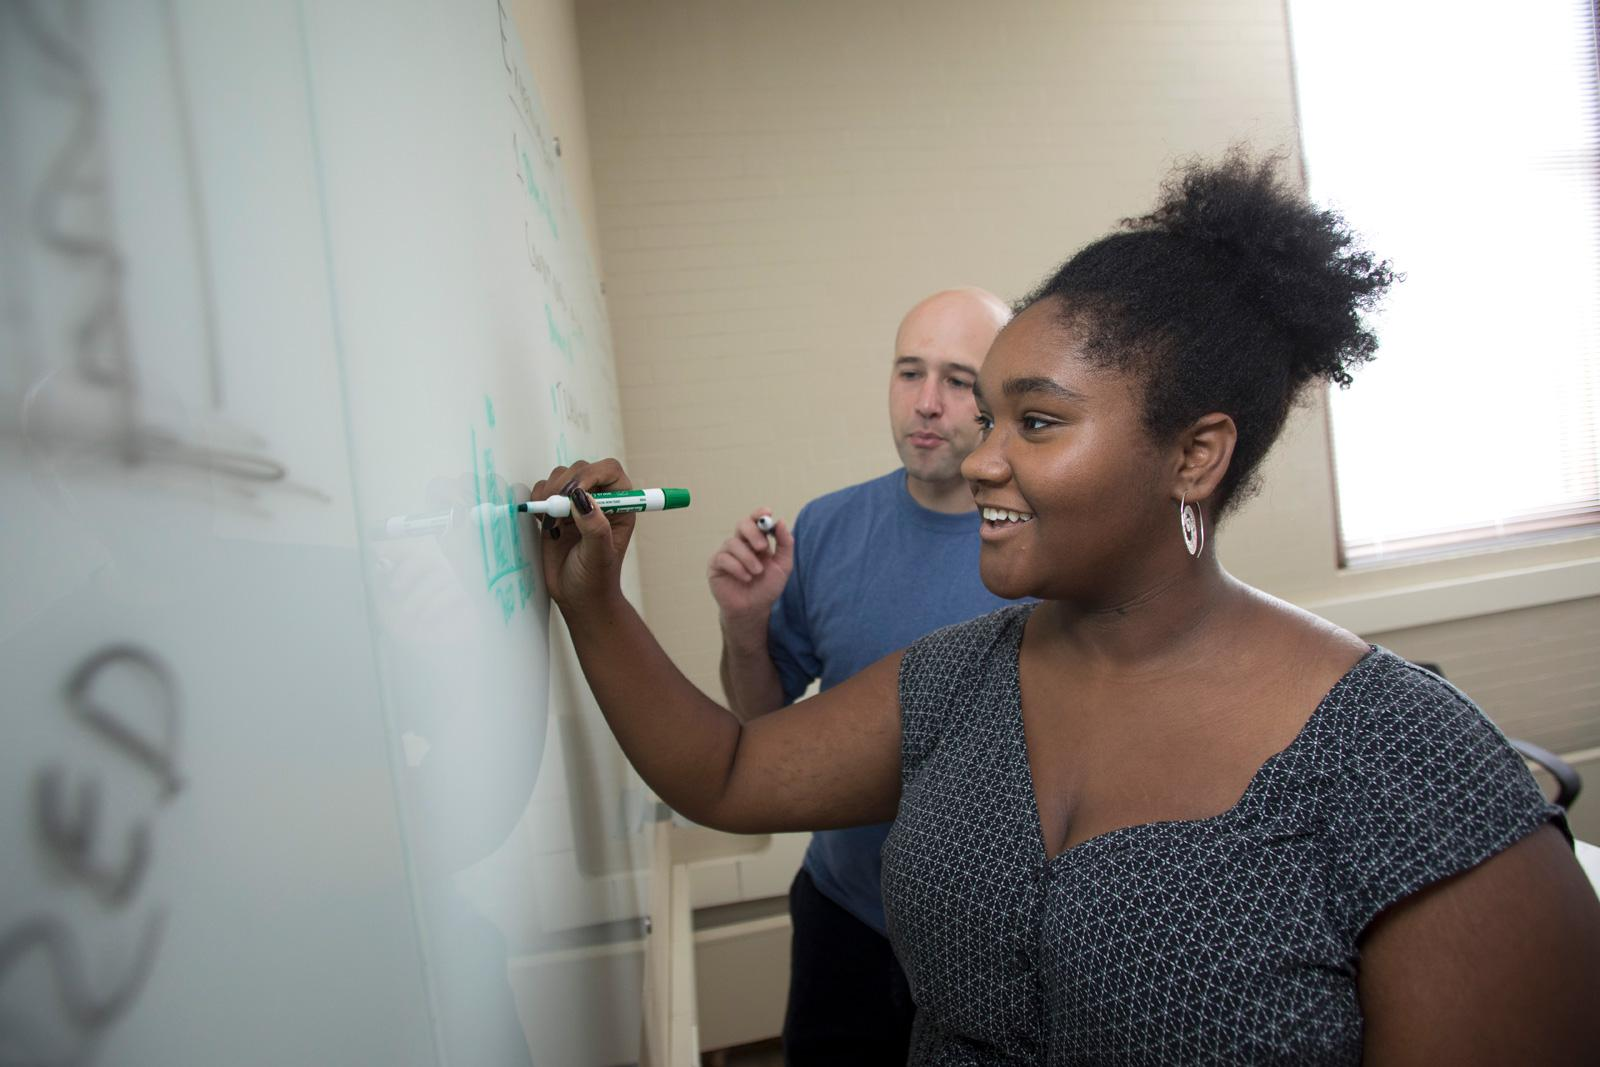 A student writes on a whiteboard while the professor looks on.